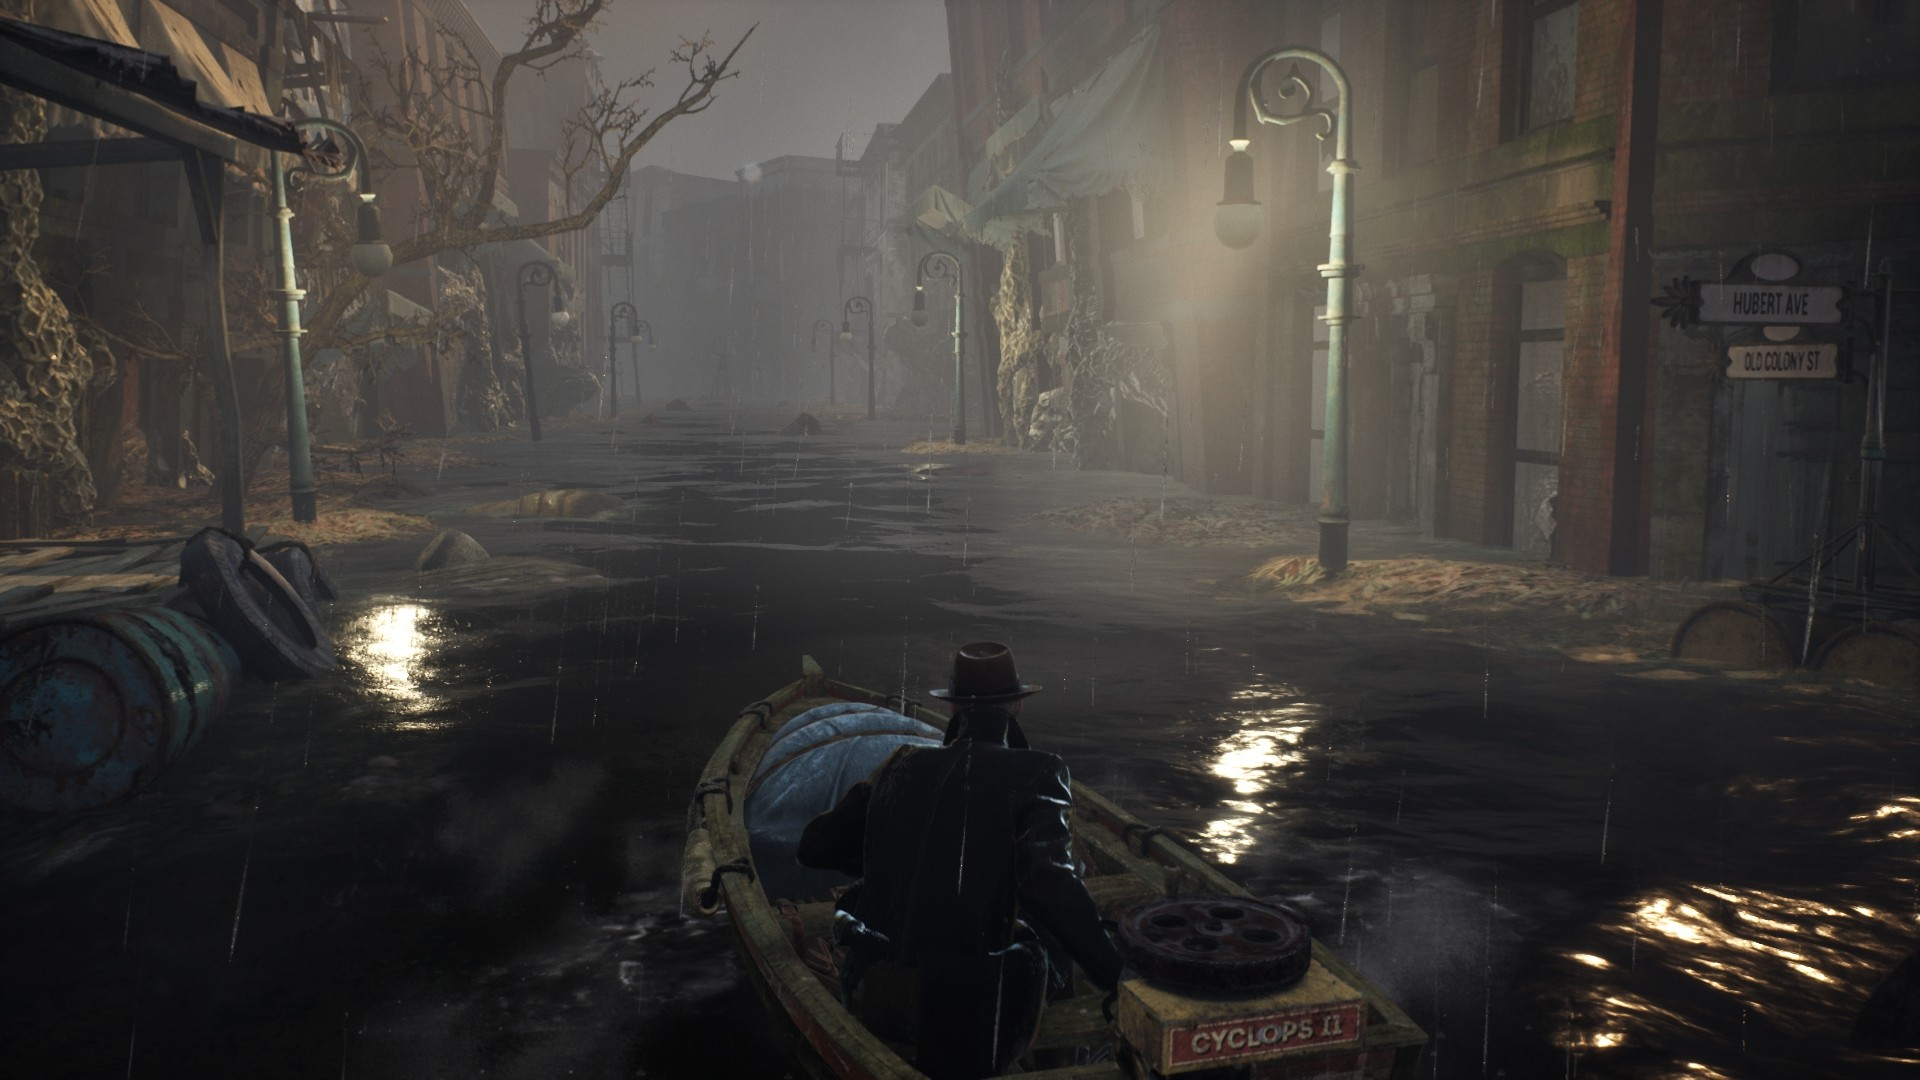 The Sinking City Beginners Guide - 7 Top Tips | The Indie Game Website